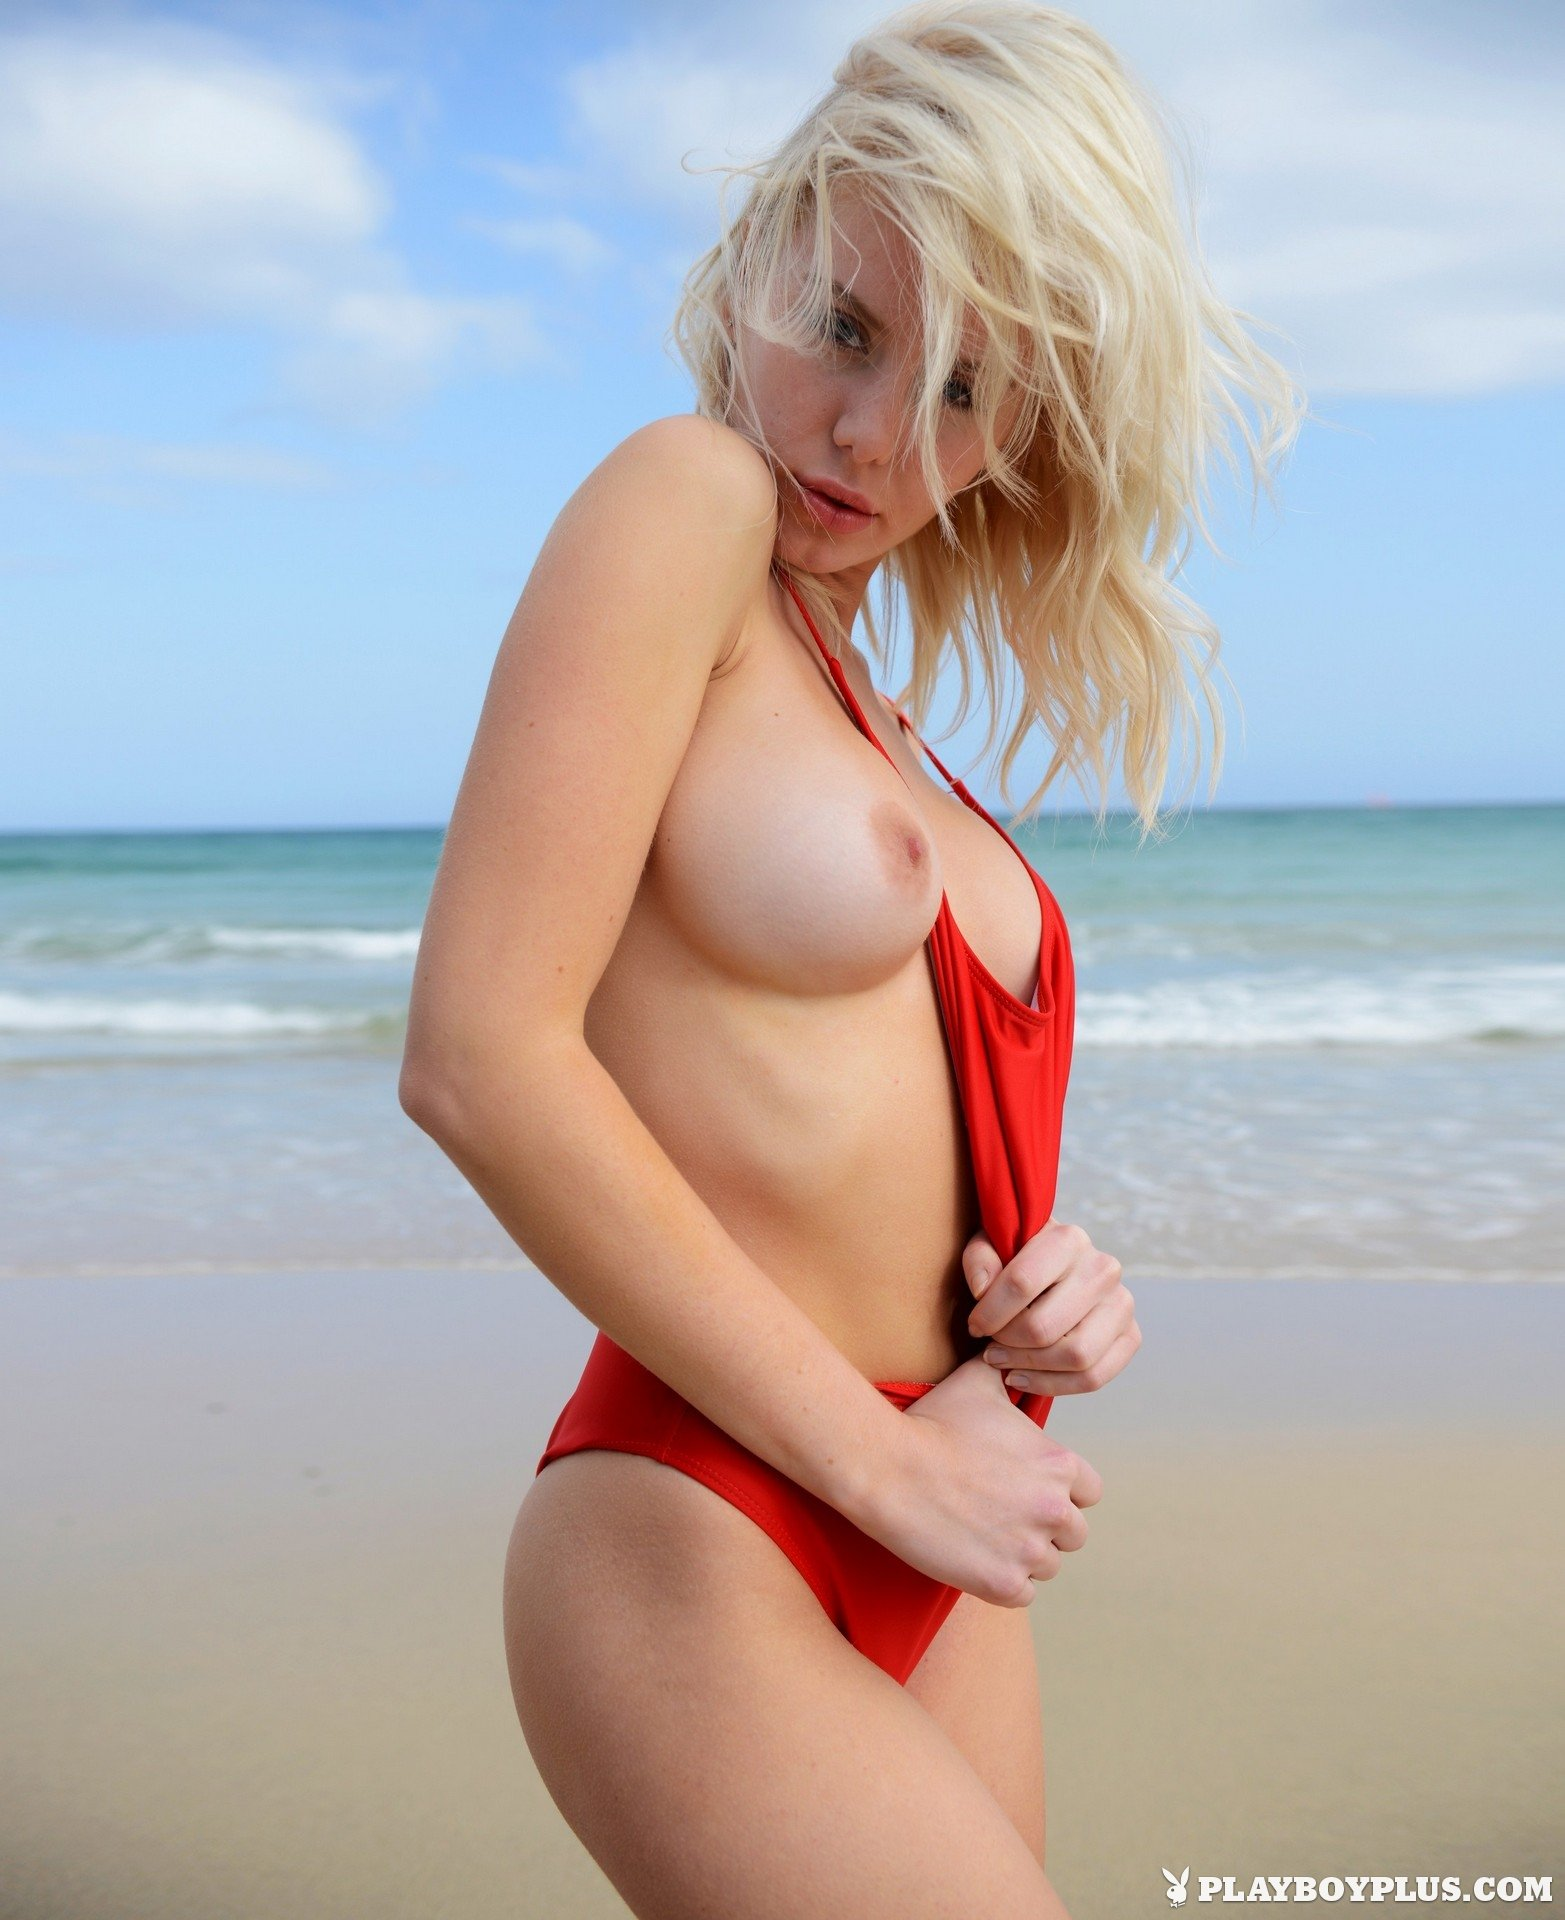 Beautiful blonde Isabella Schulz exposes her full breats.